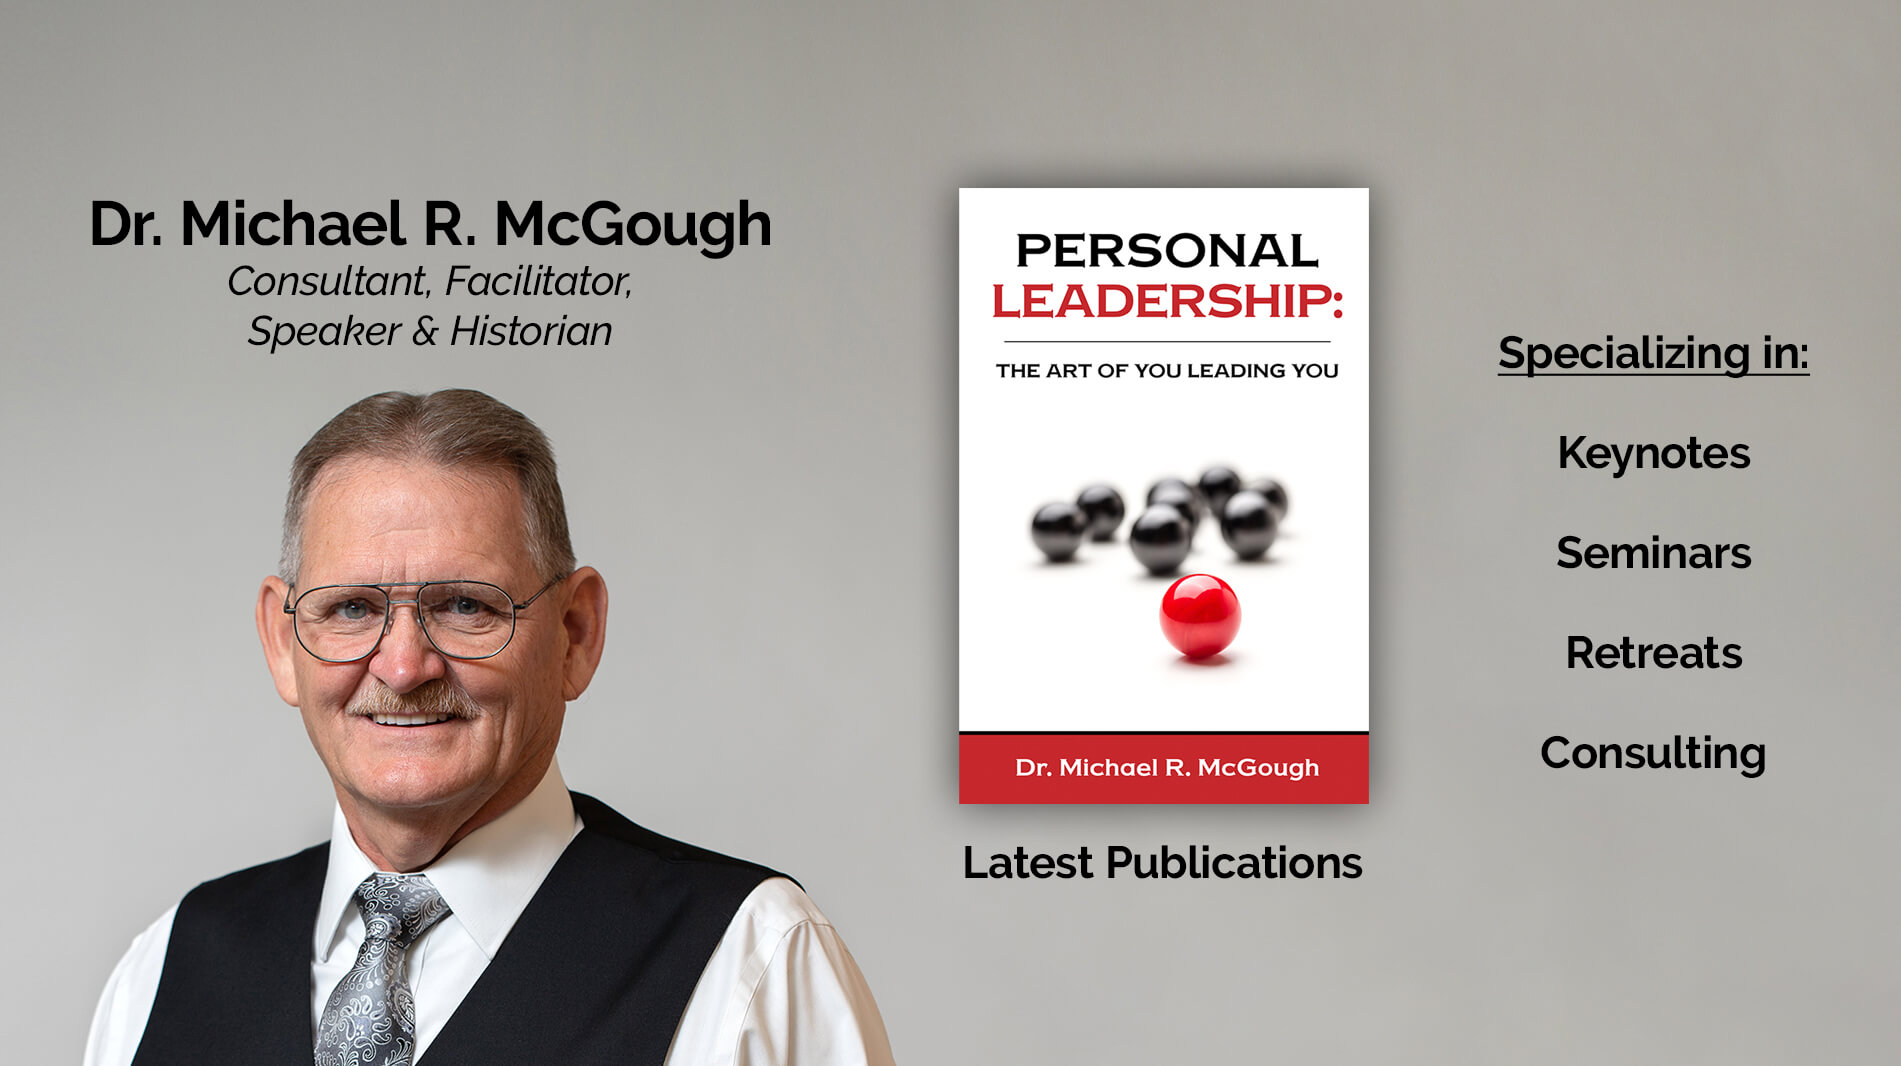 Person Leadership Book